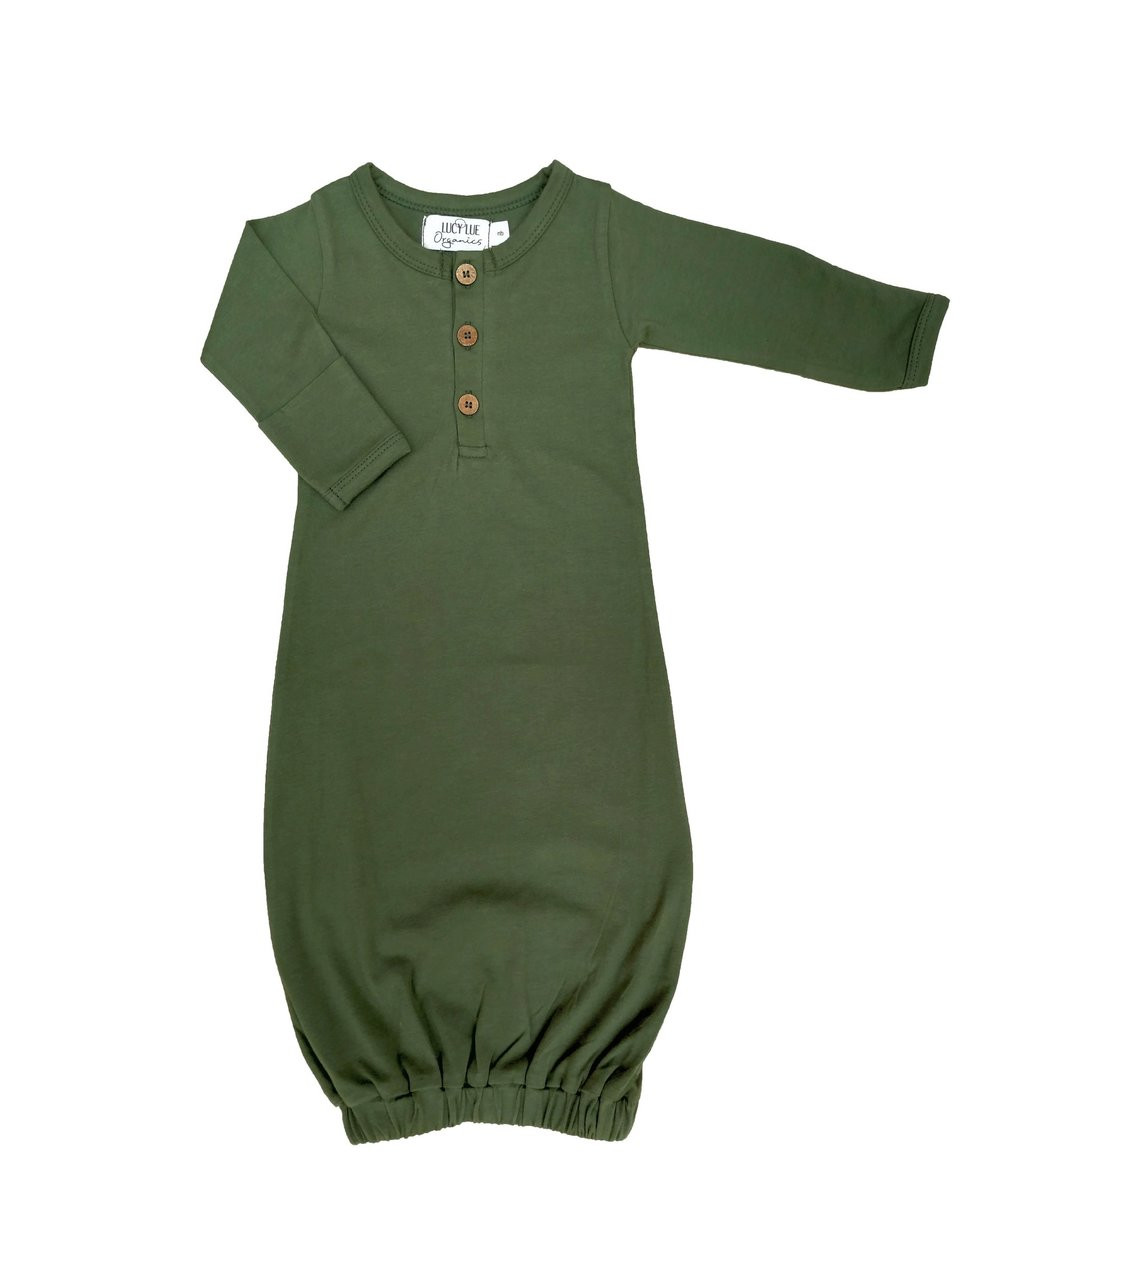 Organic Baby Snuggle Gown Olive Green Spearmint Ventures Llc